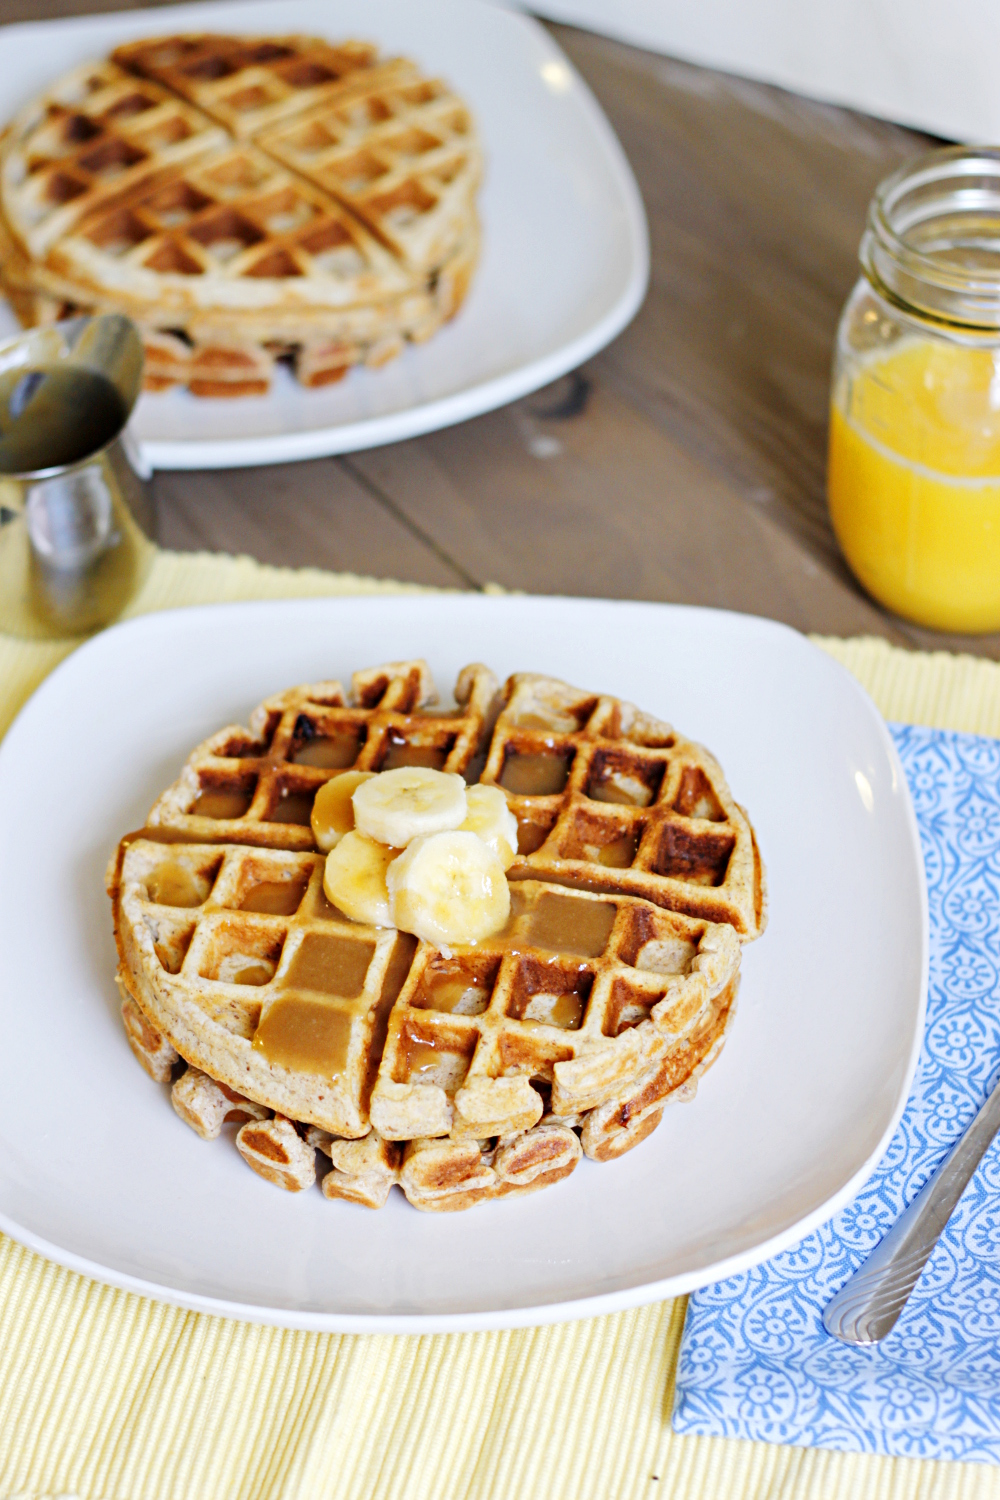 belle vie - Banana Waffles with Peanut Butter Maple Syrup - belle vie